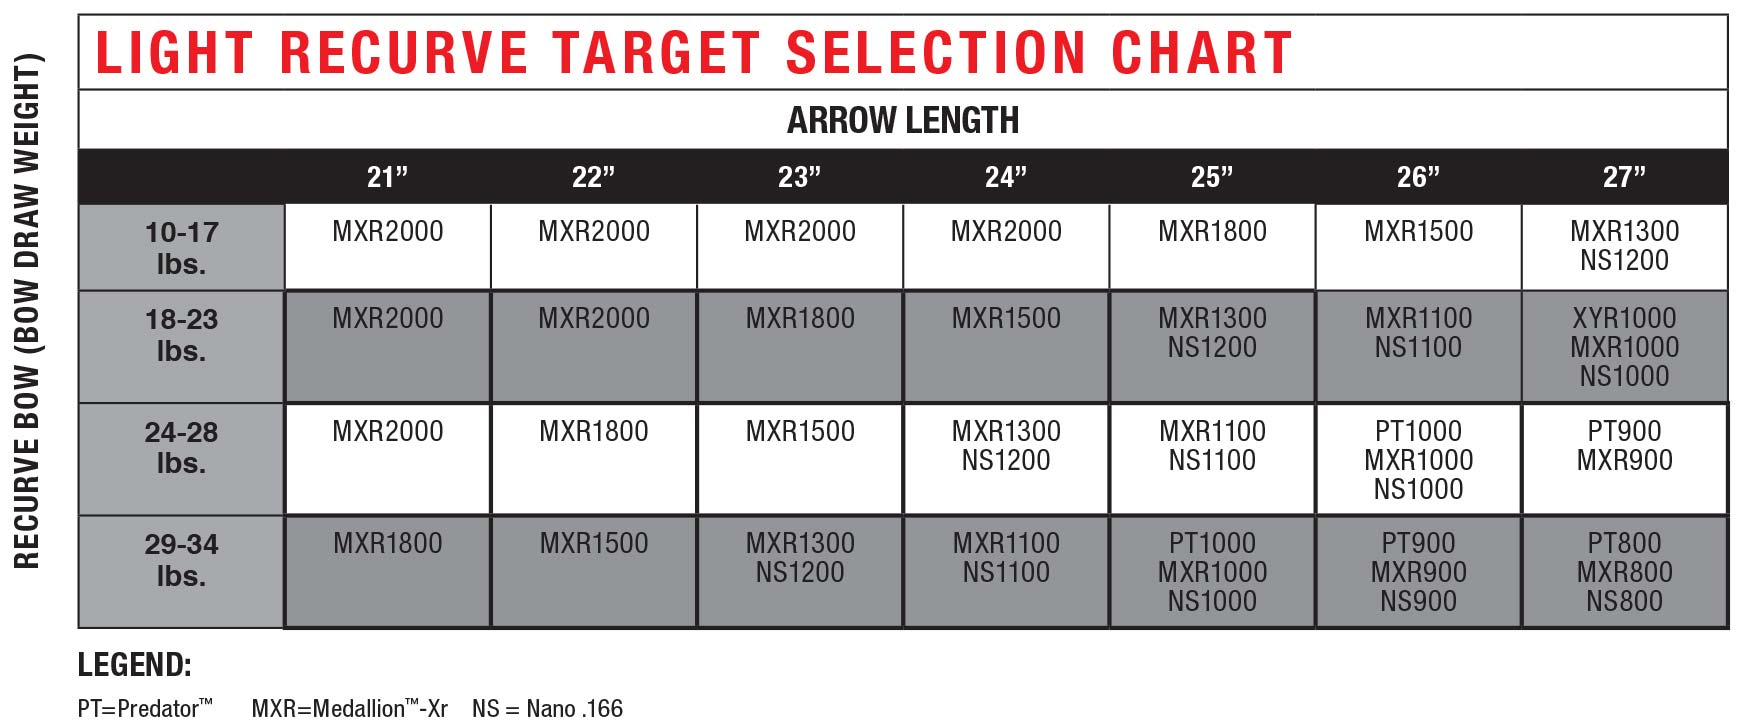 light-recurve-selection-chart.jpg